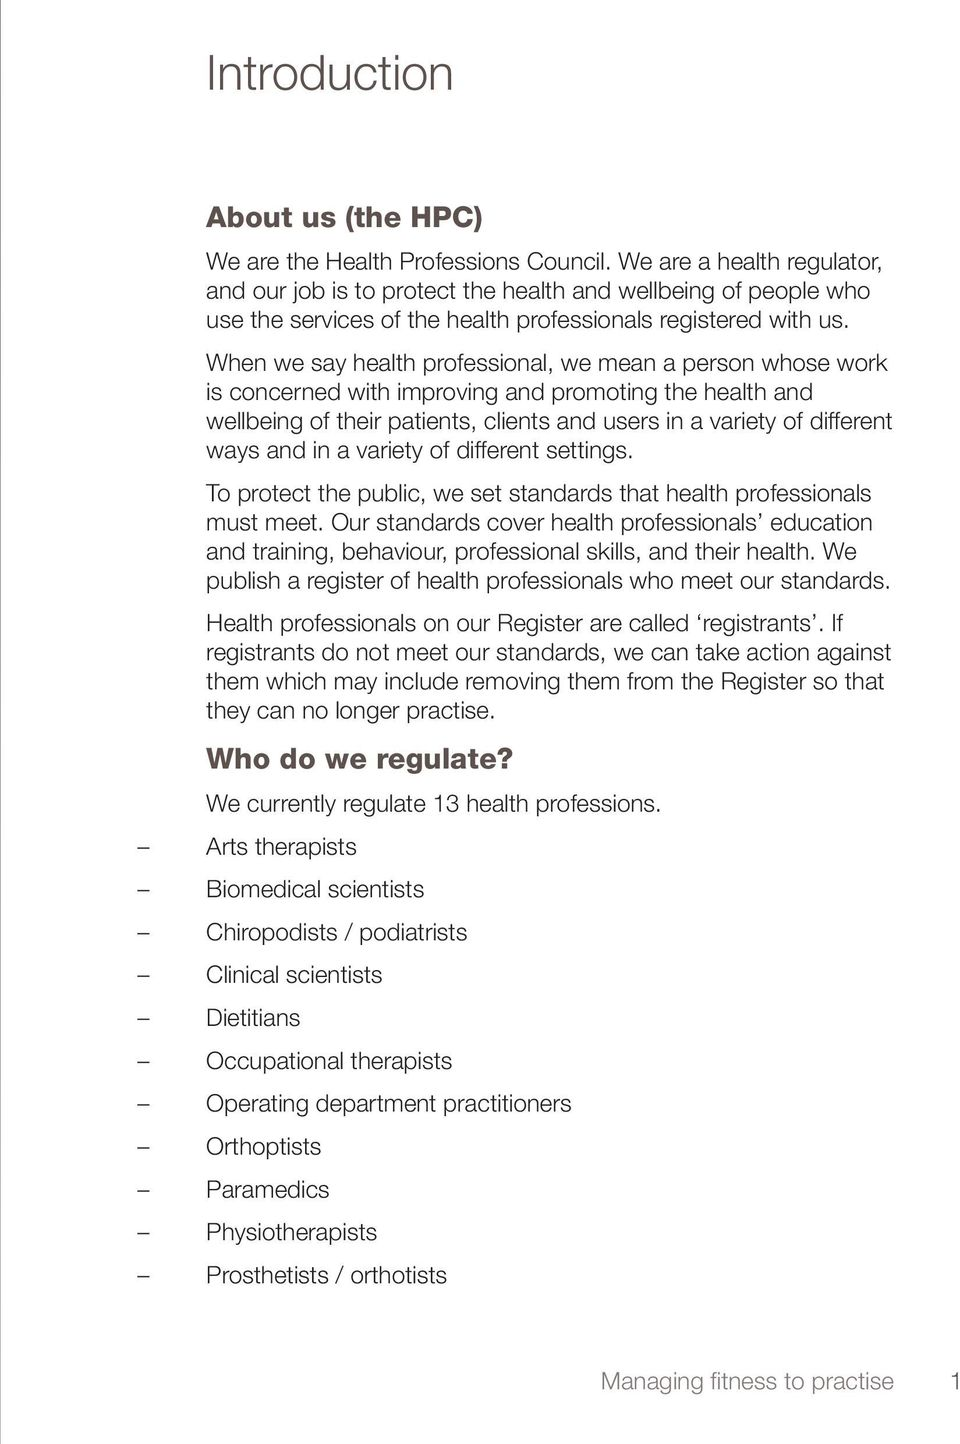 When we say health professional, we mean a person whose work is concerned with improving and promoting the health and wellbeing of their patients, clients and users in a variety of different ways and